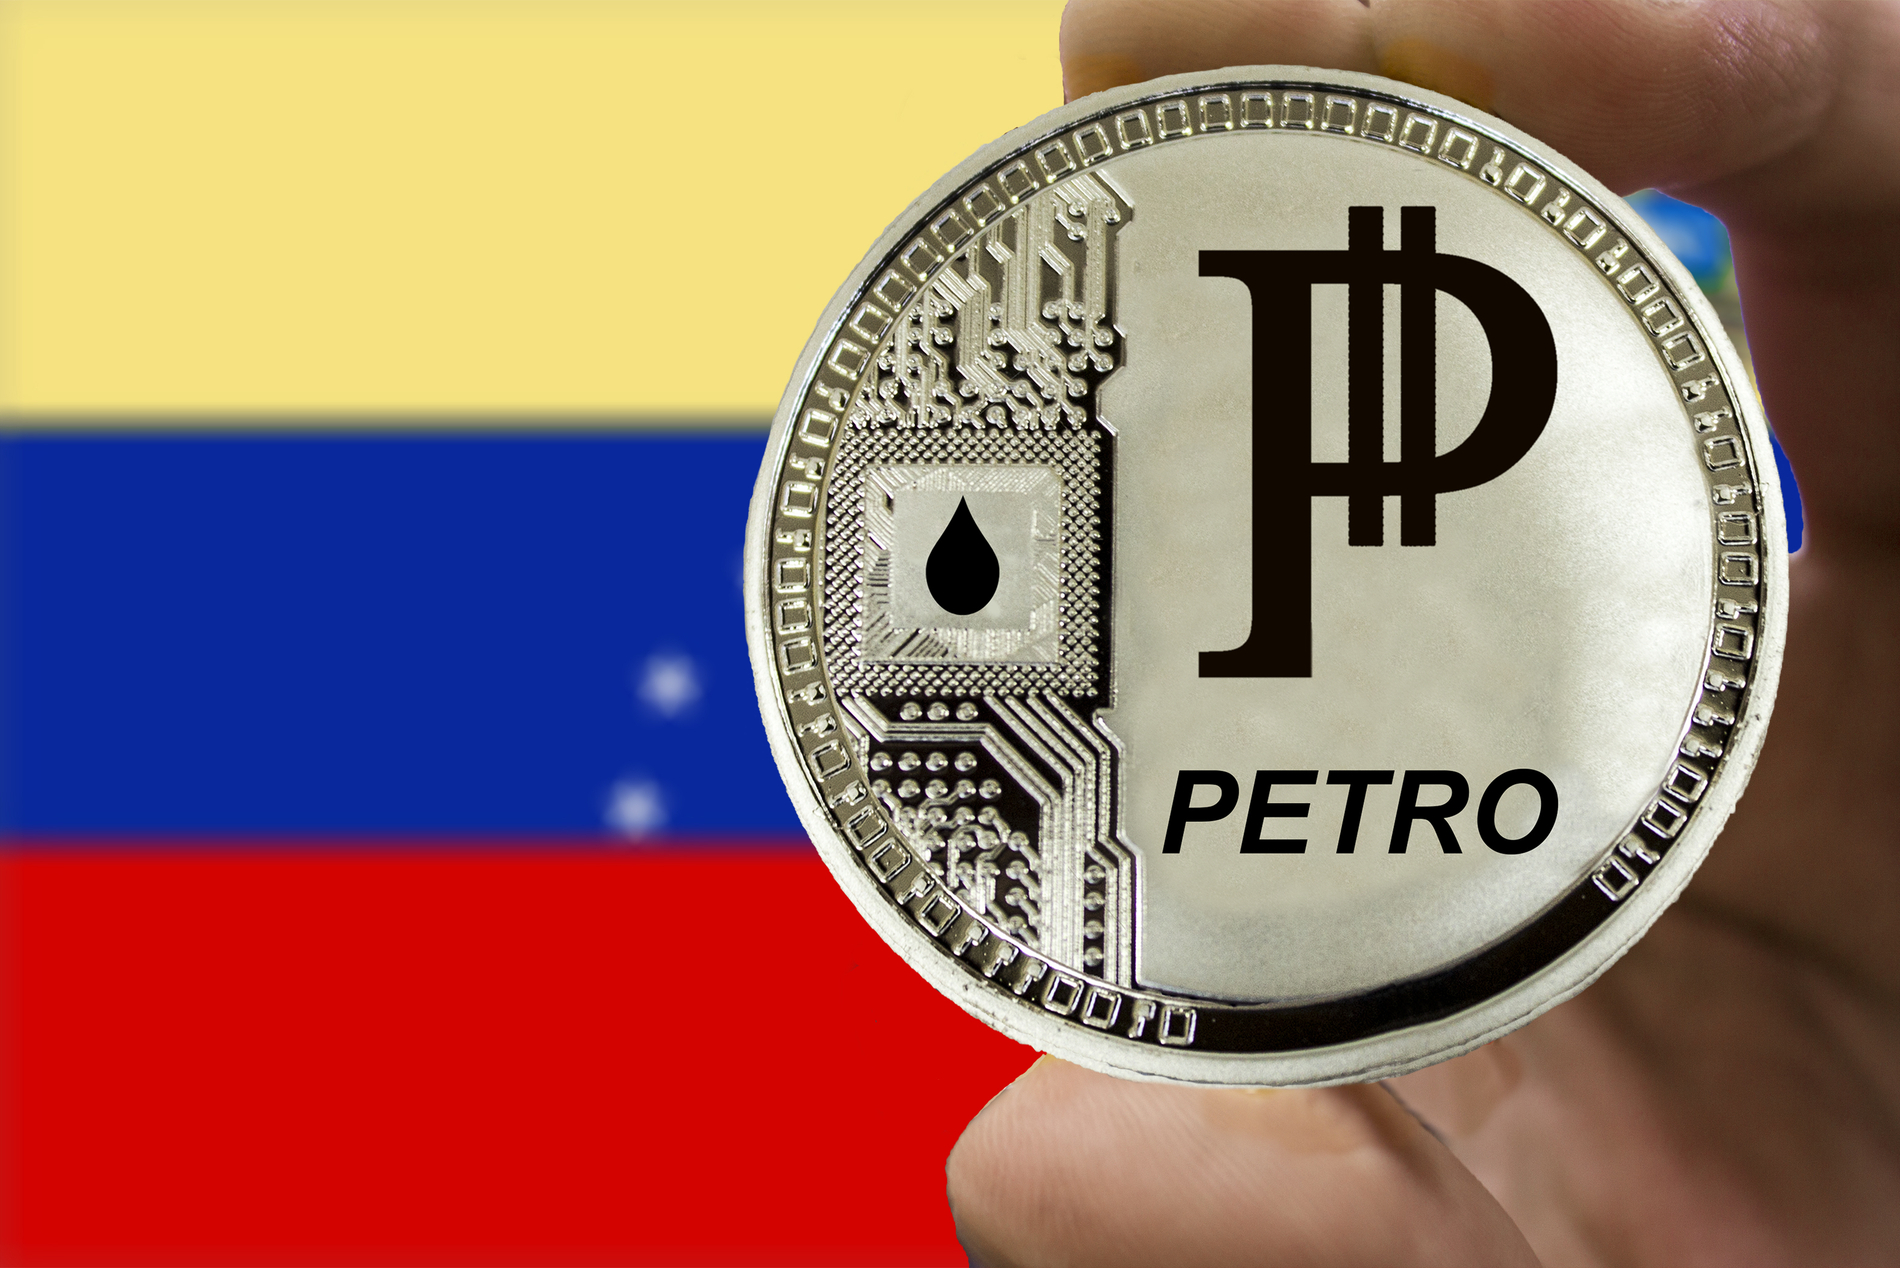 petro venezuela cryptocurrency price